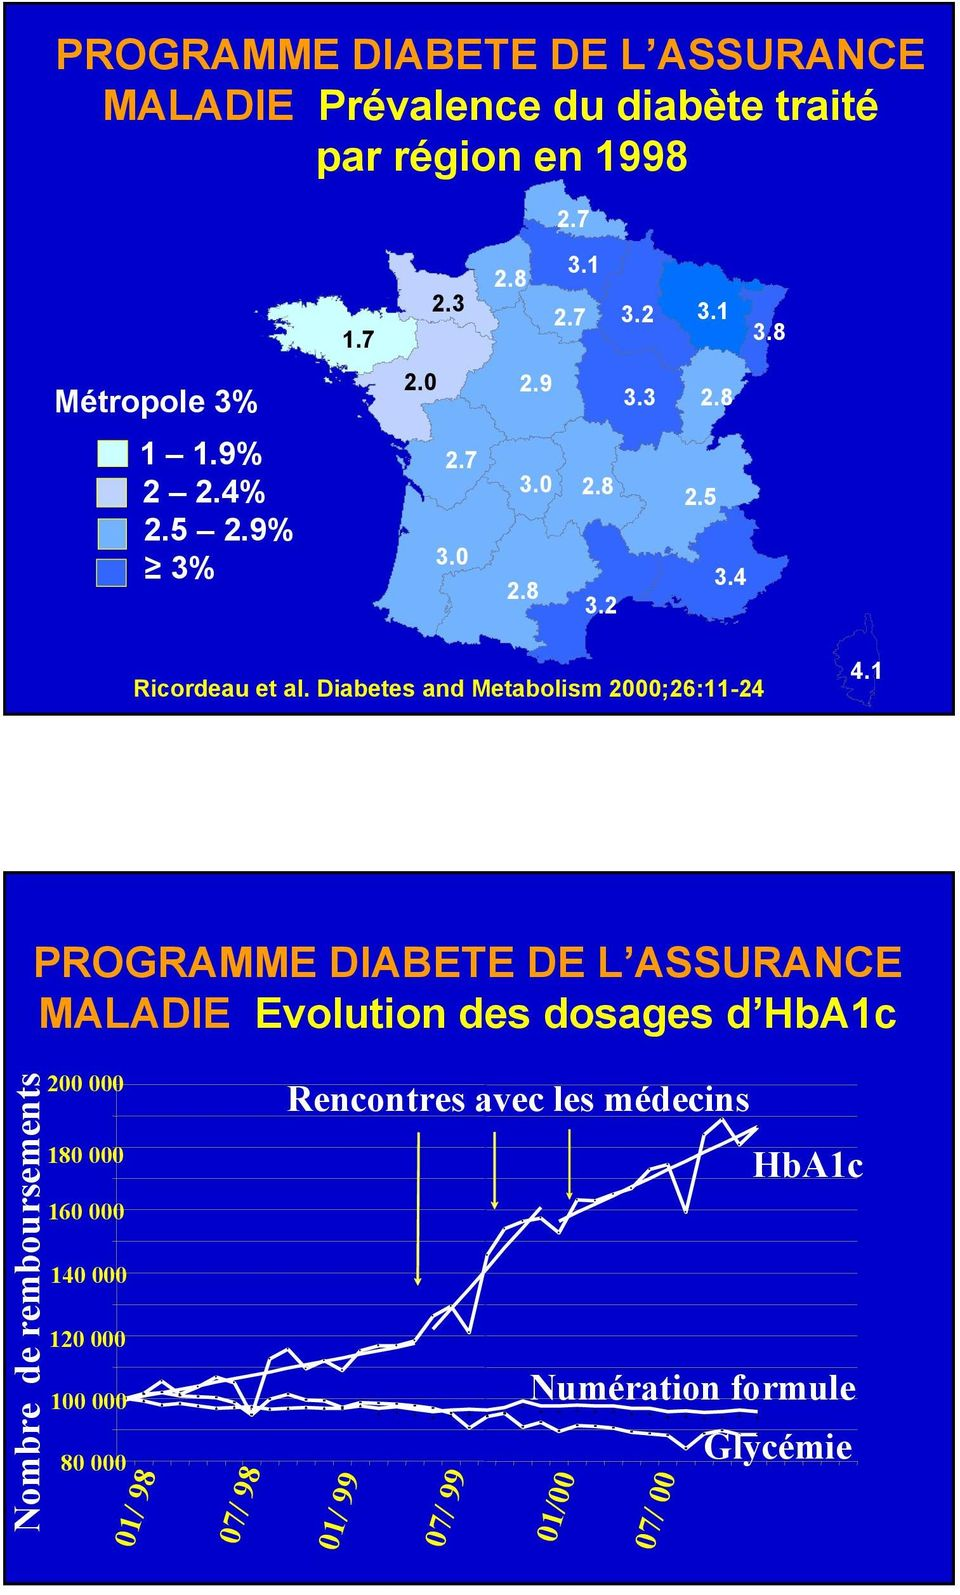 Diabetes and Metabolism 2000;26:11-24 4.